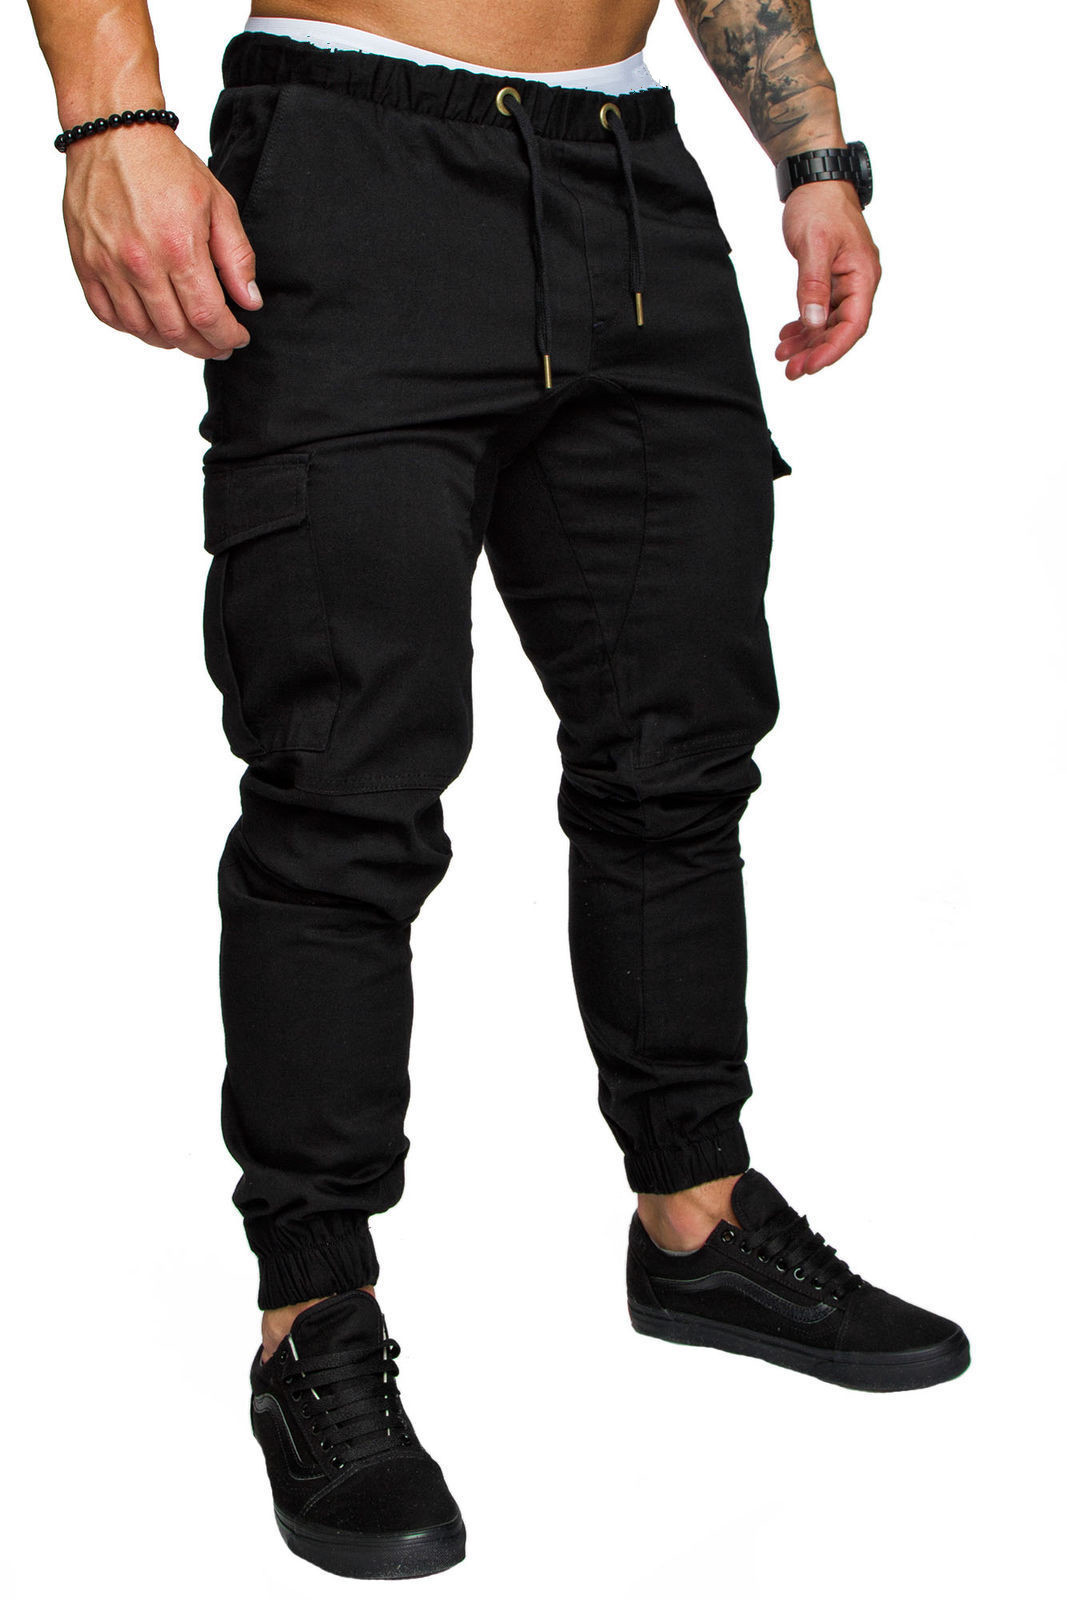 MRMT 2020 Brand New Men's Trousers Casual Fashion Elastic Pants Tether Pants For Male Solid Color Trouser